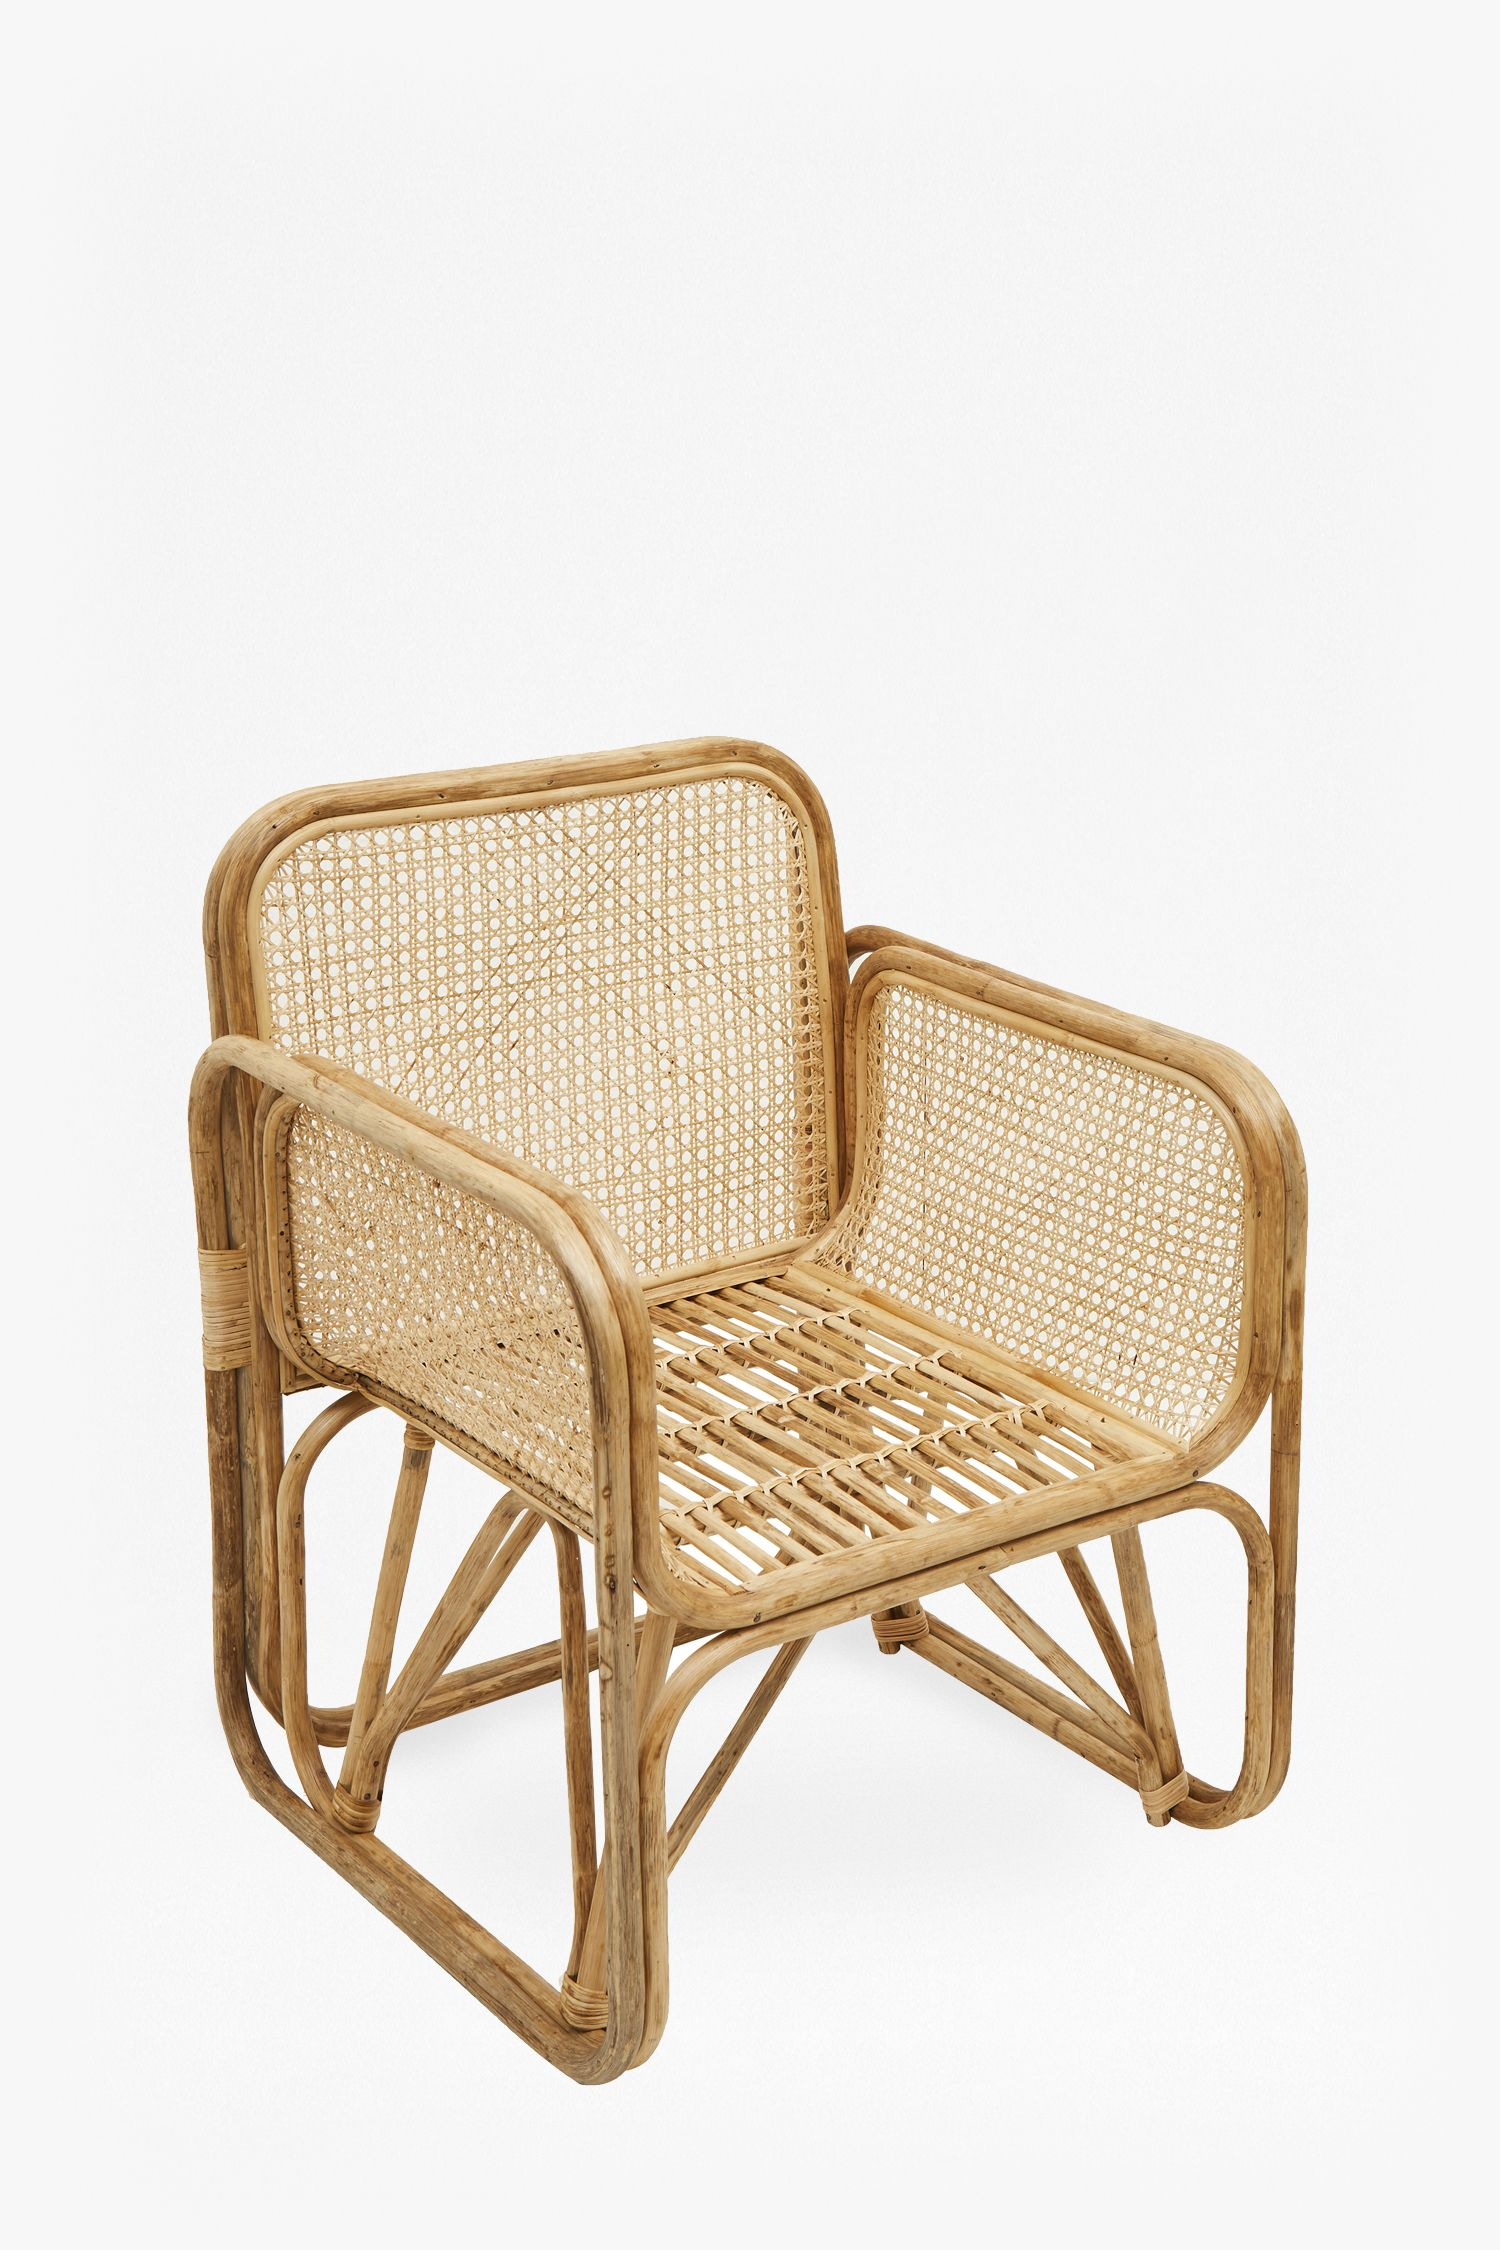 Amazing French Cane Chair Chair In 2019 Furniture Chair French Ibusinesslaw Wood Chair Design Ideas Ibusinesslaworg